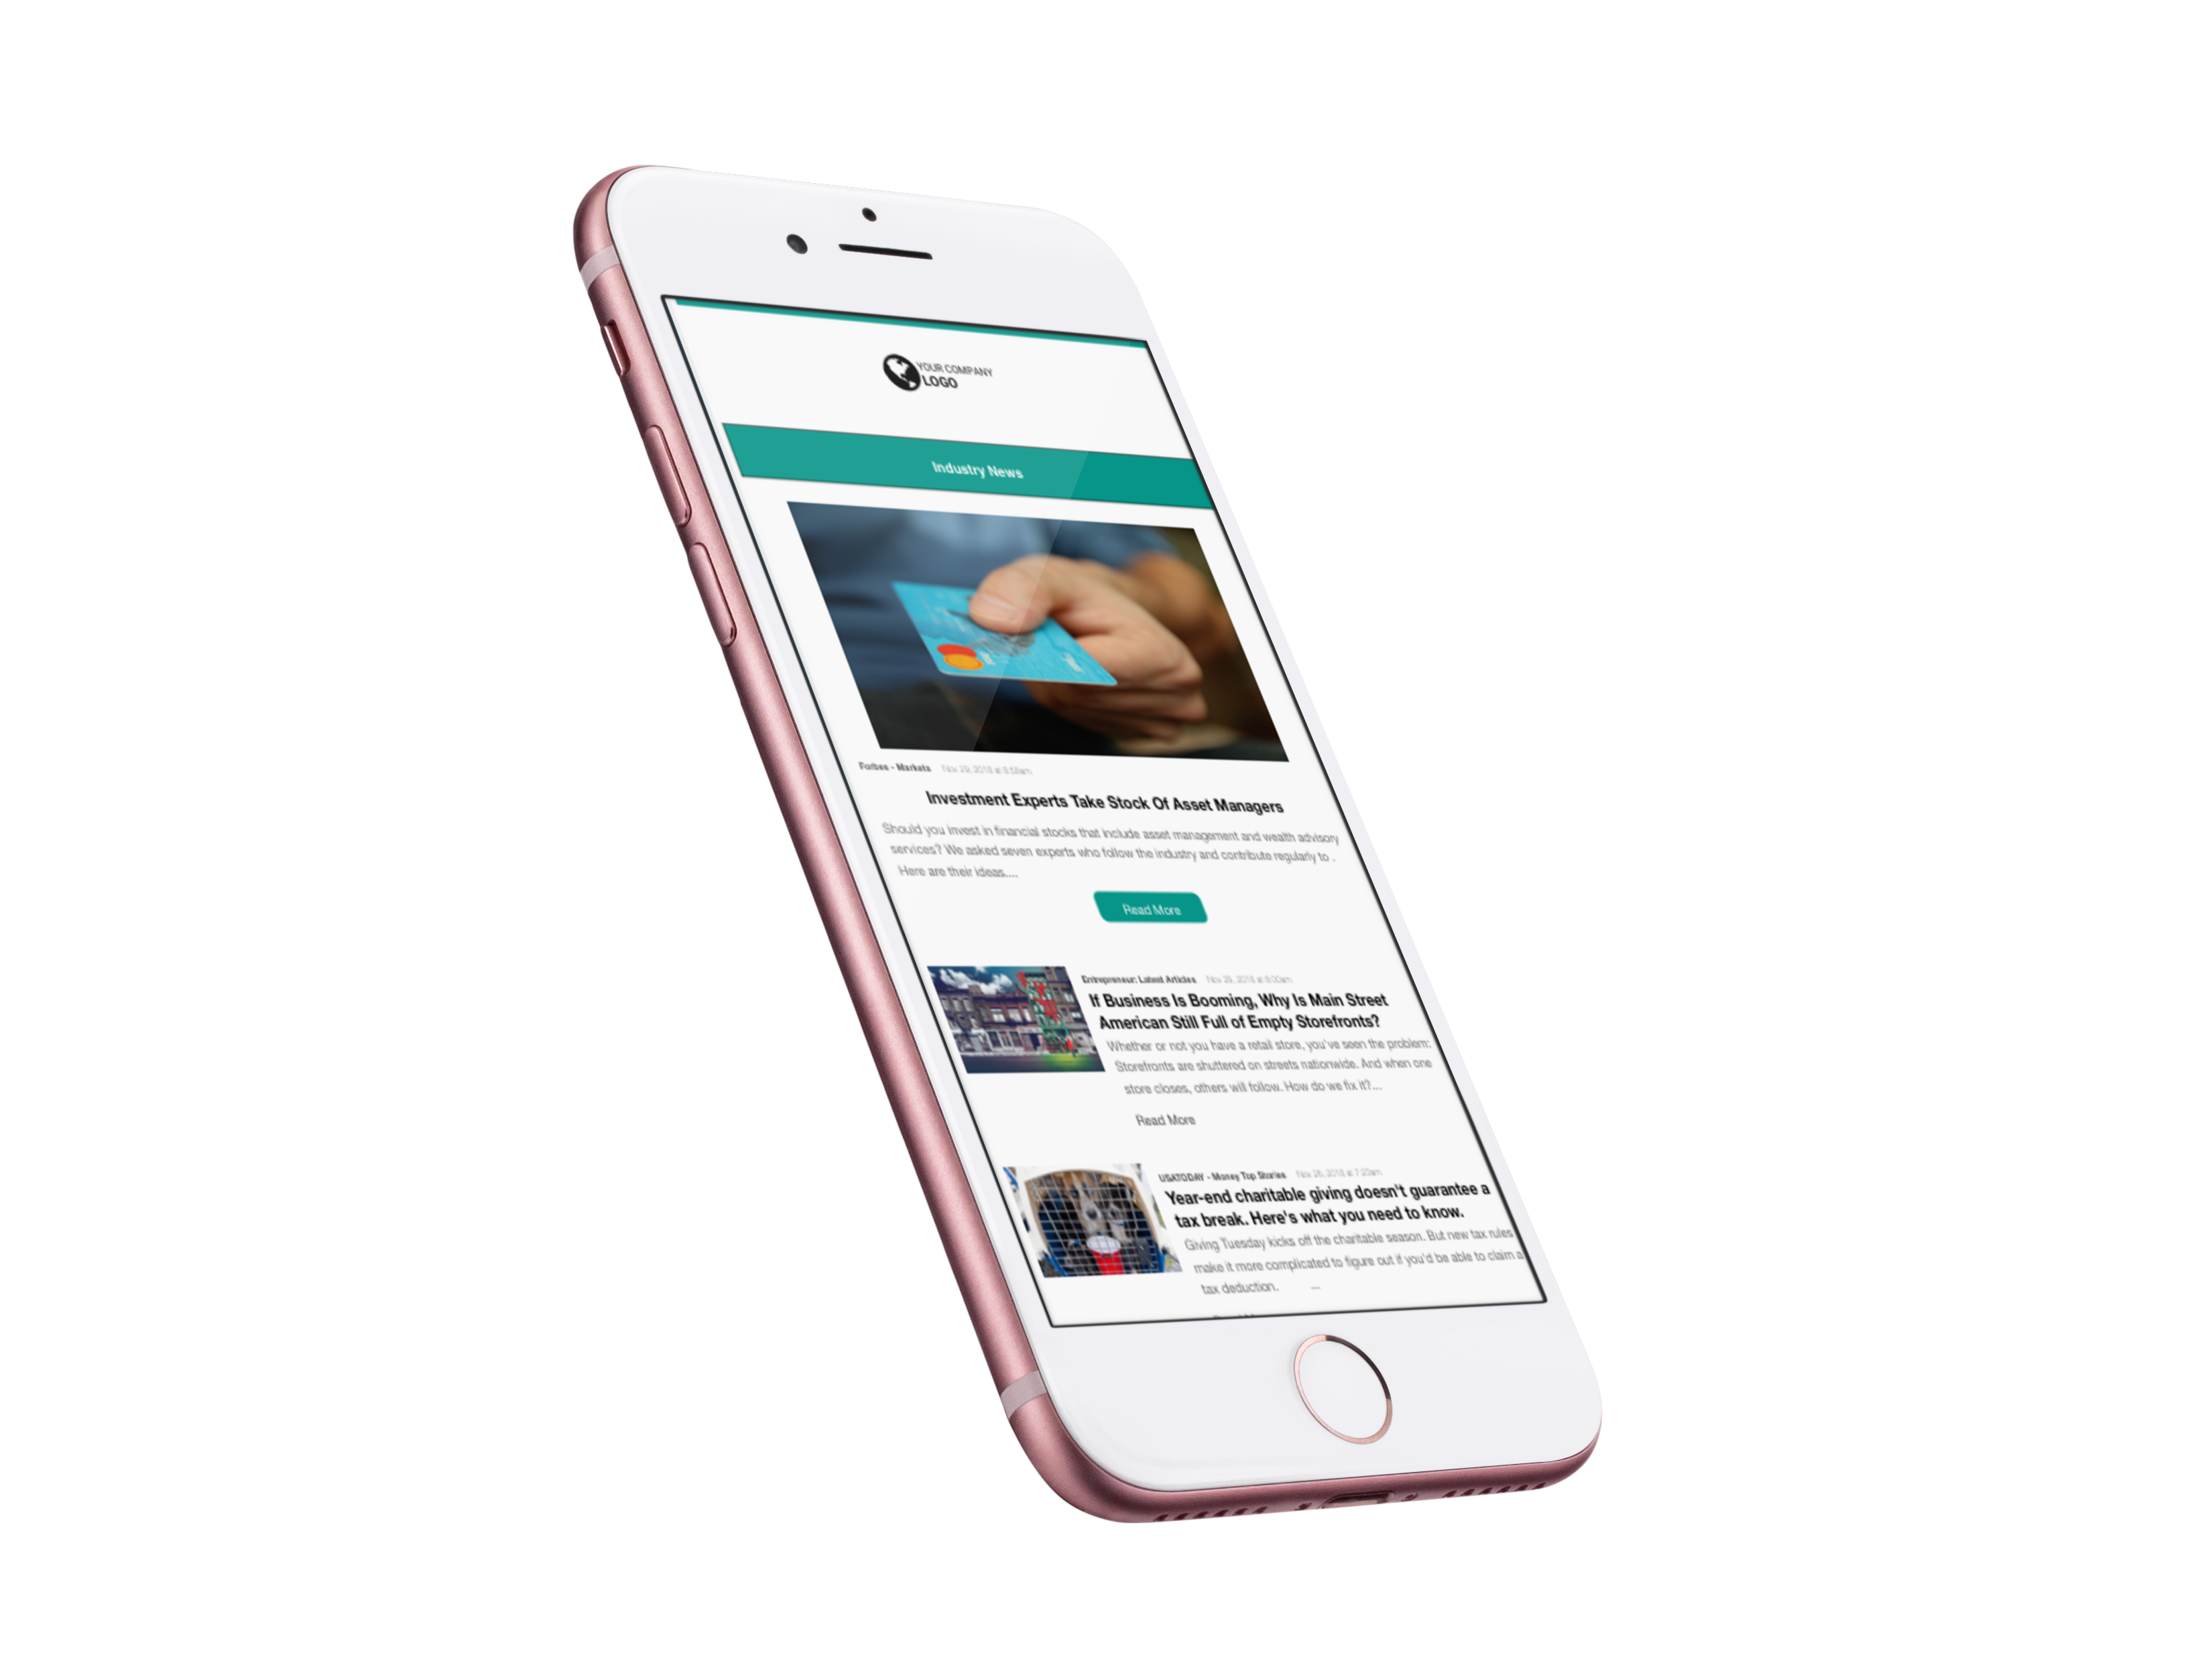 Build your newsletter to be available on a variety of devices including mobile